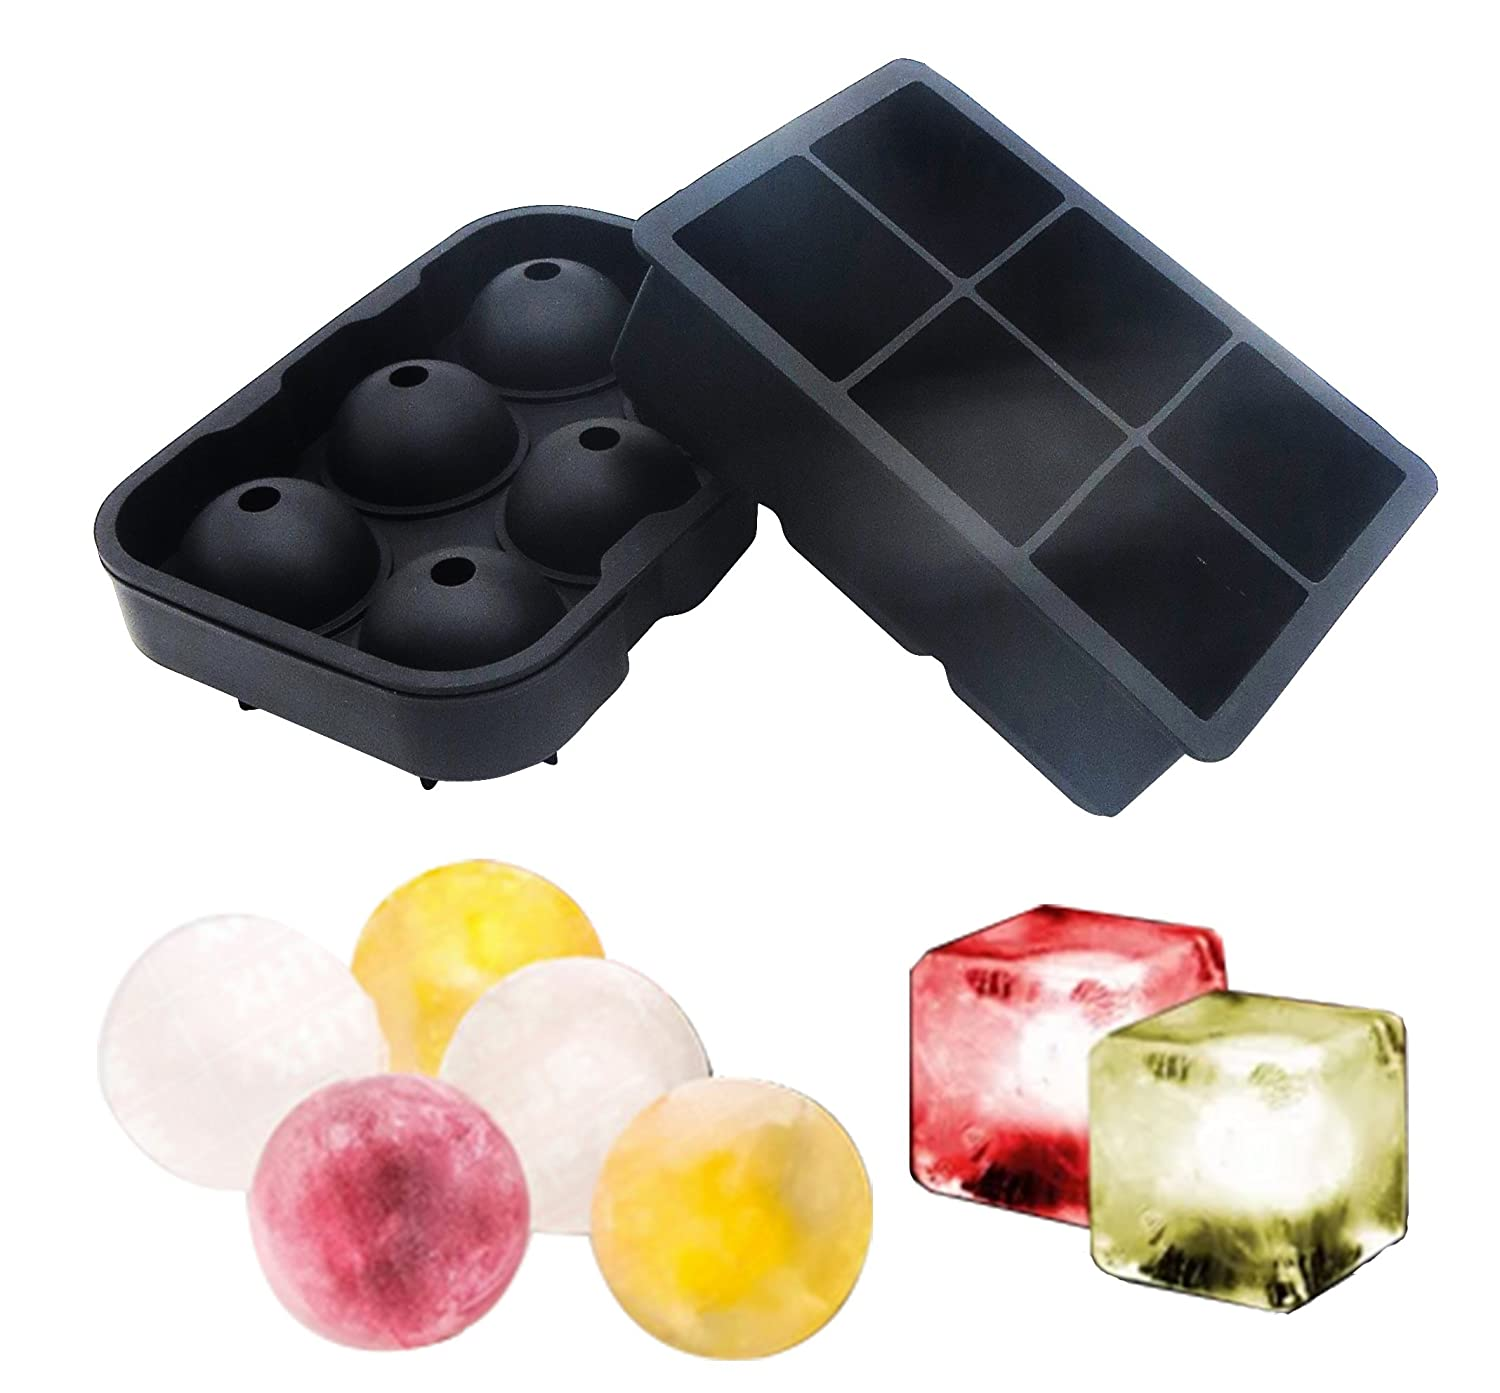 Tosnail Ice Ball Maker Mold and Large Ice Cube Mold - Black Flexible Silicone Ice Tray - Molds 6 x 4.8cm Square Ice Cube Mold & 6 x 4.5cm Round Ice Ball Spheres, Set of 2 by Tosnail T-IceBallCubeMold-SetOf2